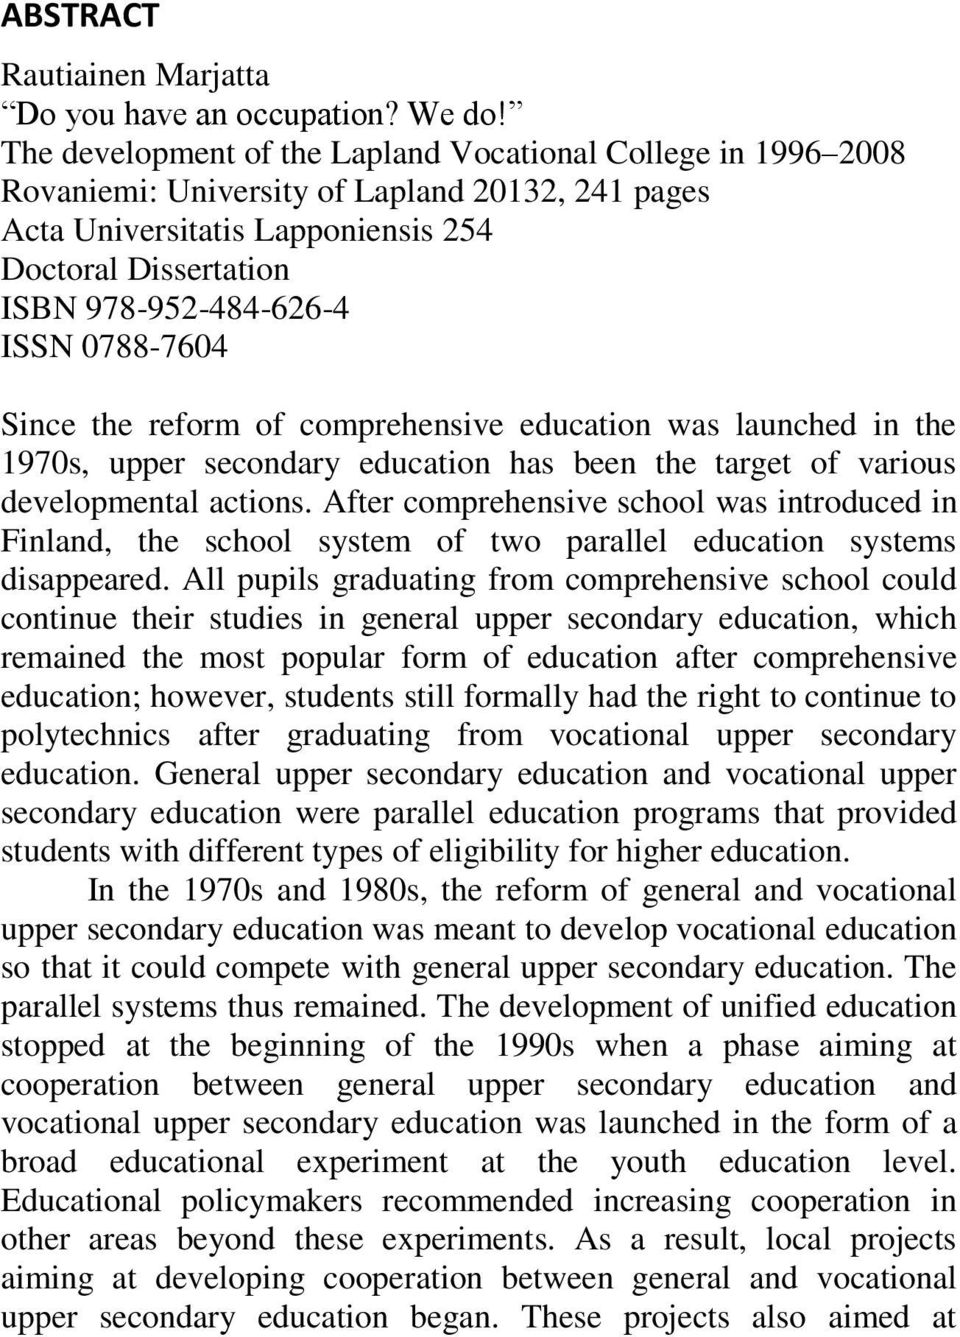 0788-7604 Since the reform of comprehensive education was launched in the 1970s, upper secondary education has been the target of various developmental actions.